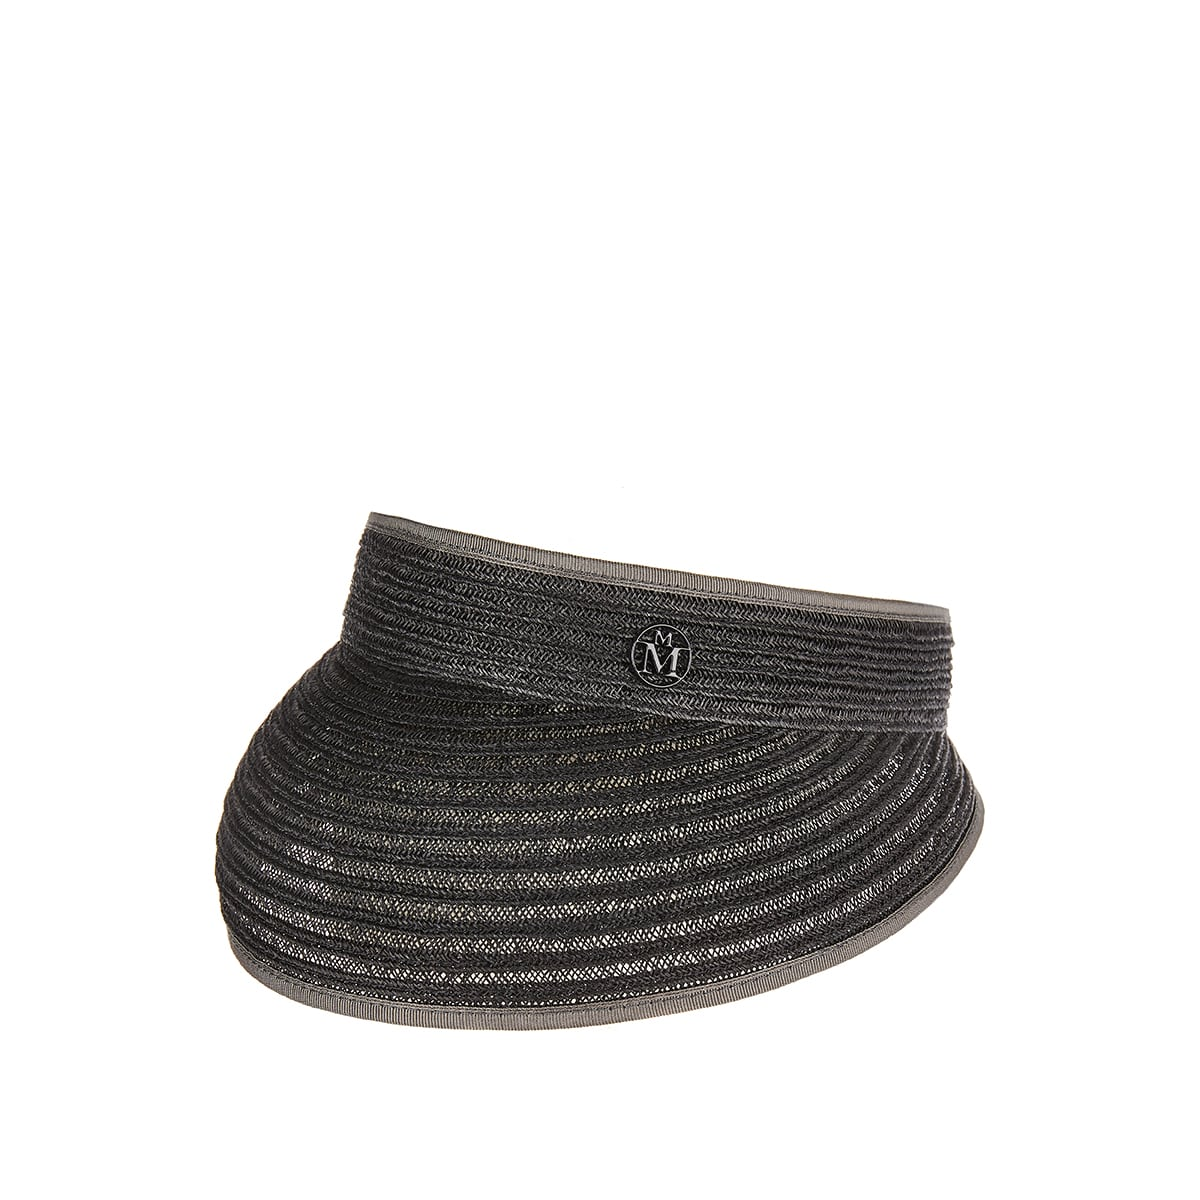 Patty hemp woven visor